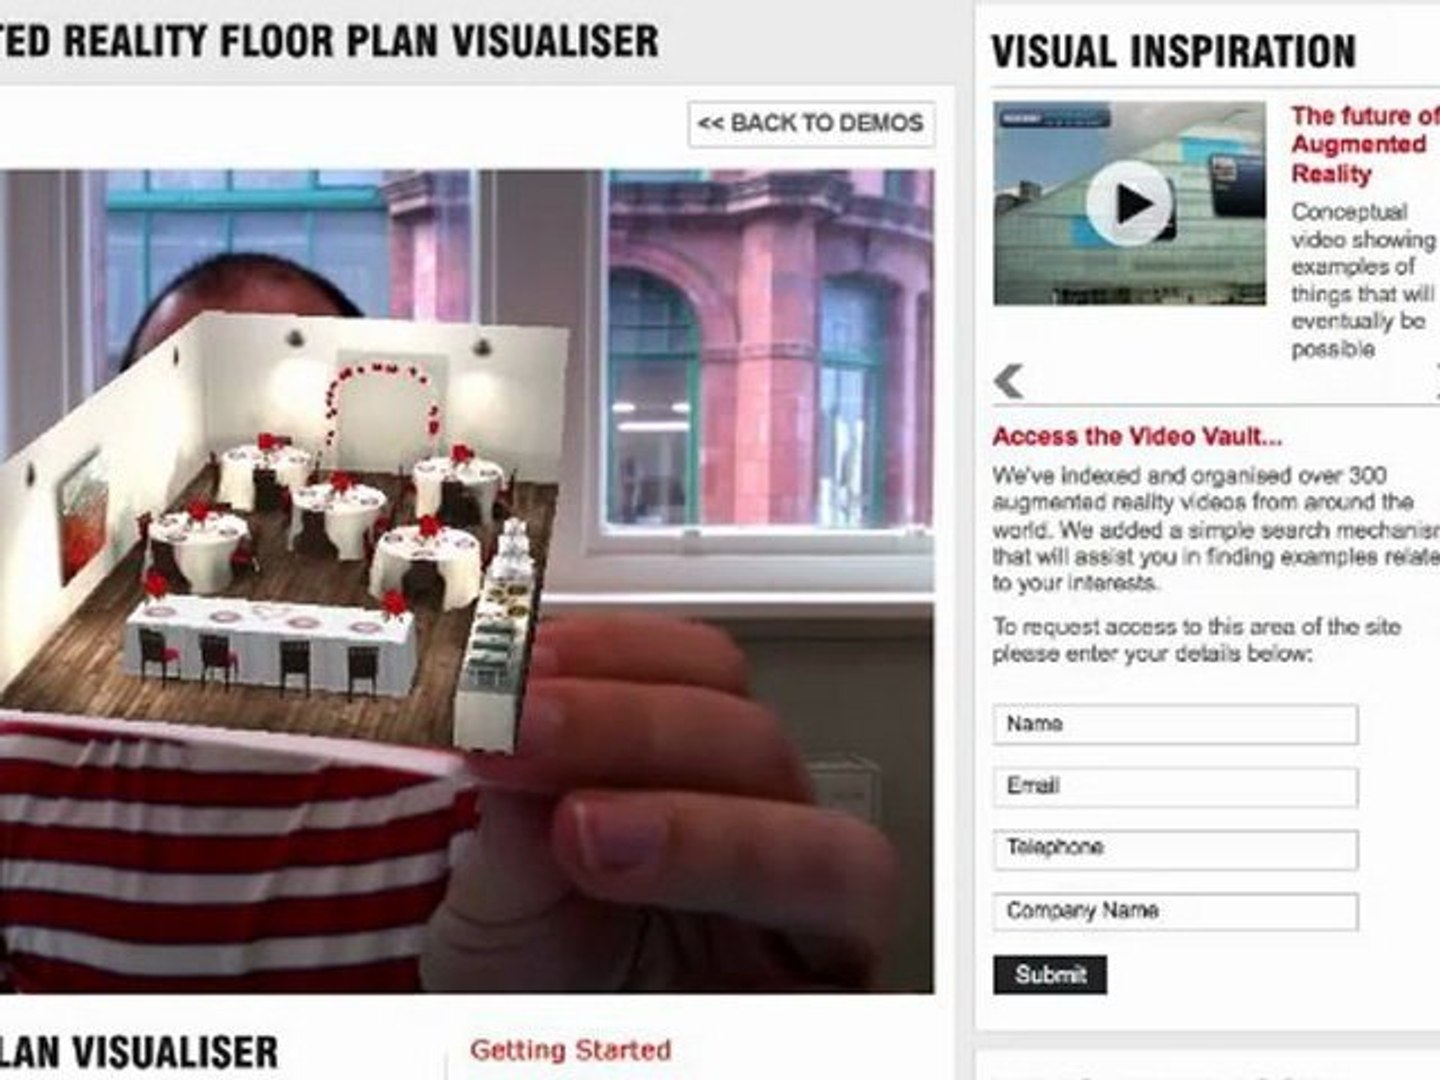 Augmented Reality Floor Plan Visualiser Video Dailymotion